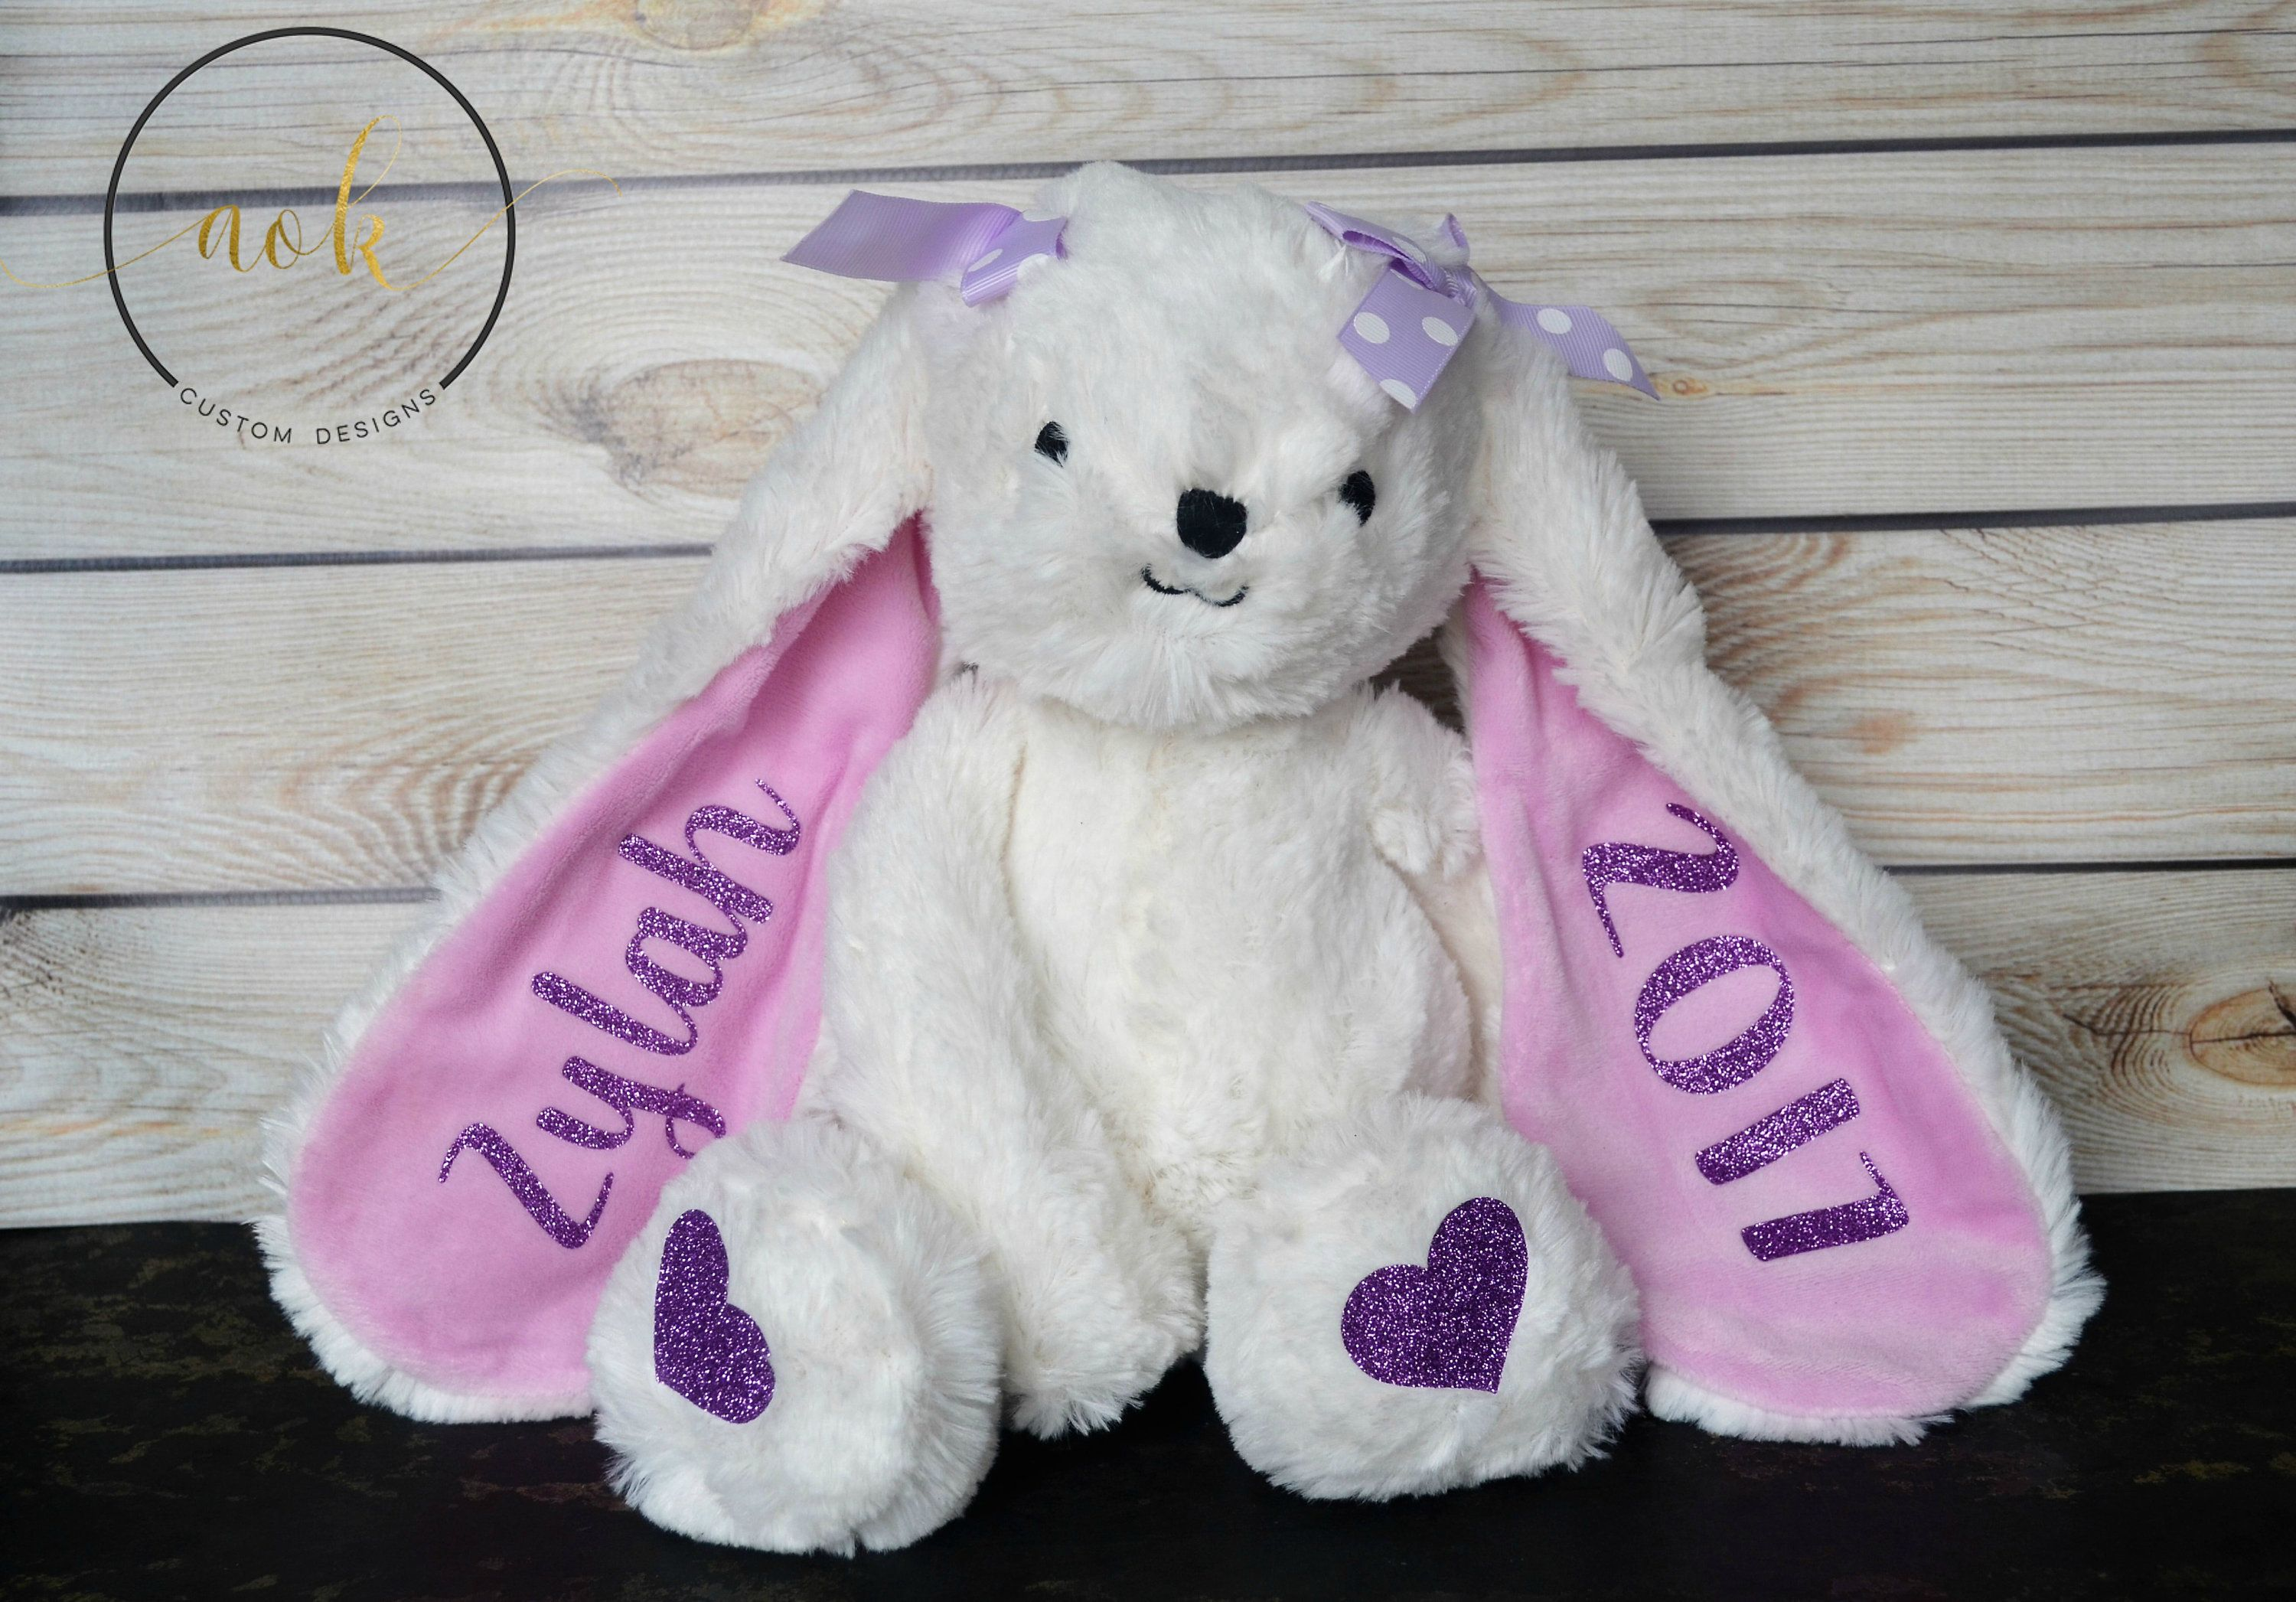 Personalized Stuffed Animal Personalized Plush Personalized Easter Bunny Kids B Personalized Easter Bunny Personalized Stuffed Animals Easter Gifts For Kids